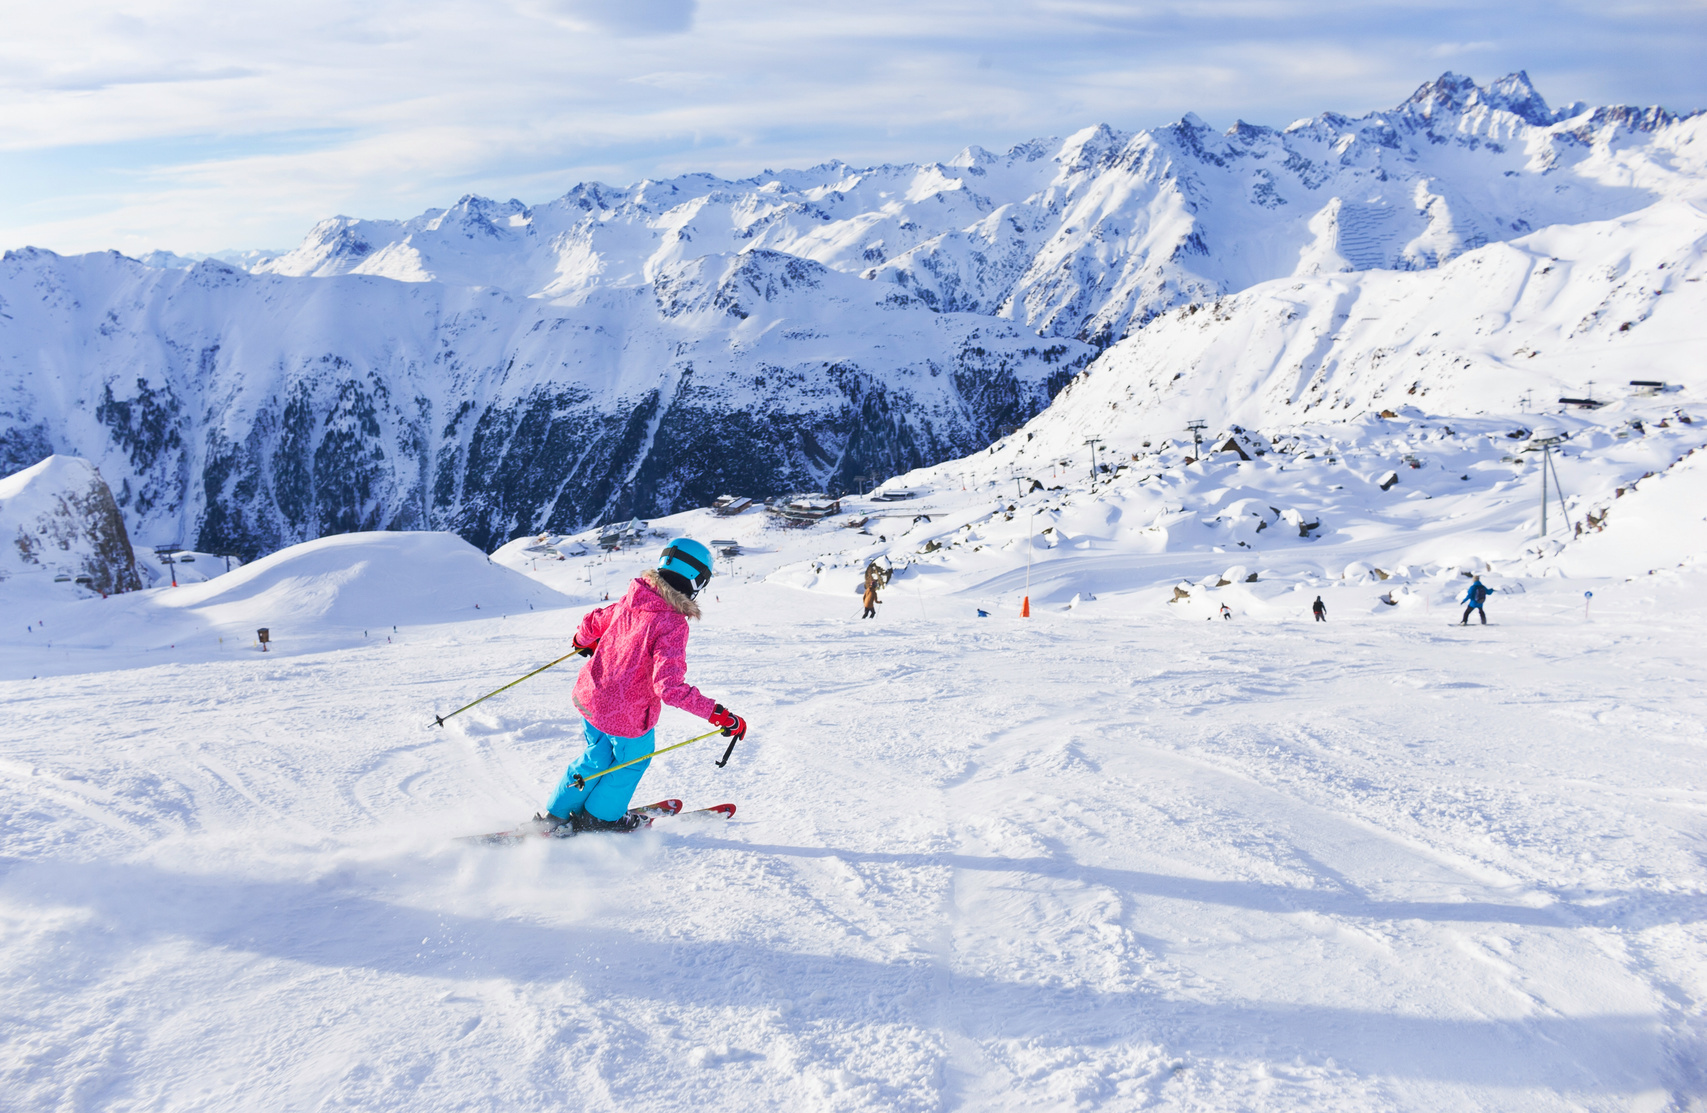 Book a 2-day trip to one of Japan's top ski resorts Naeba